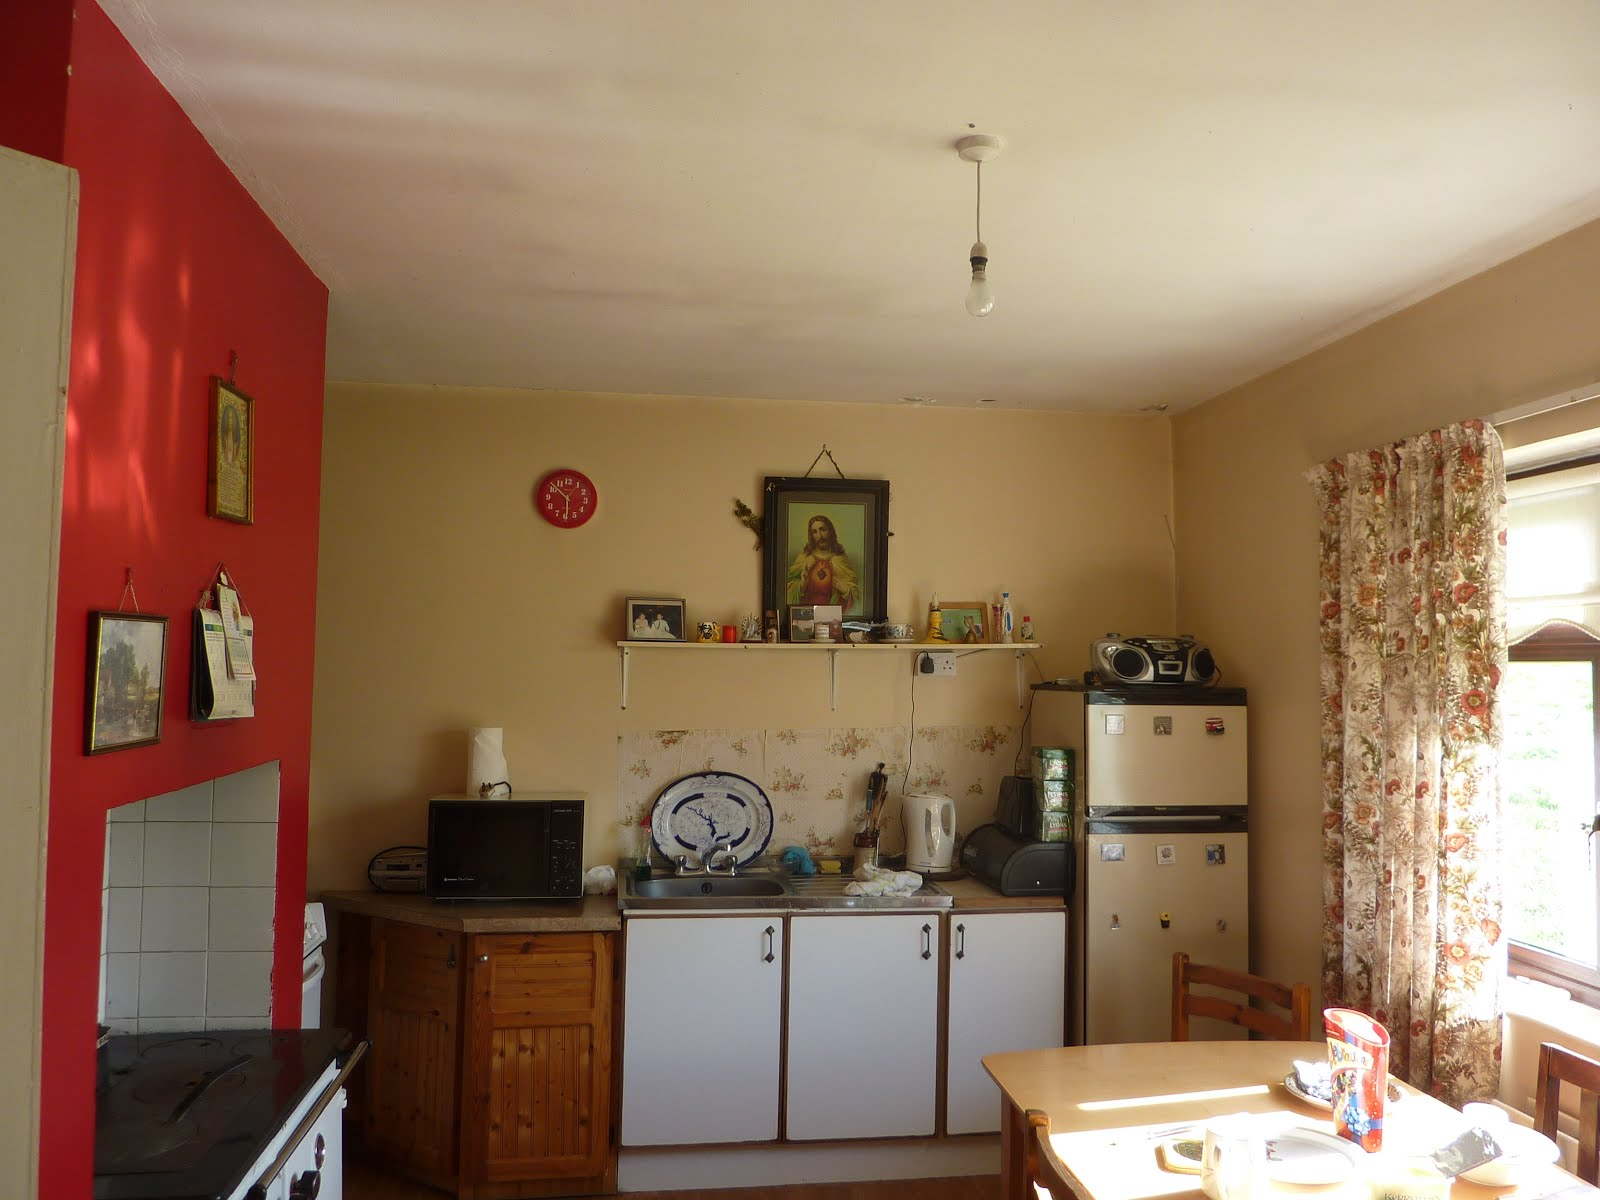 My Uncles Kitchen In Ballybrown County Limerick